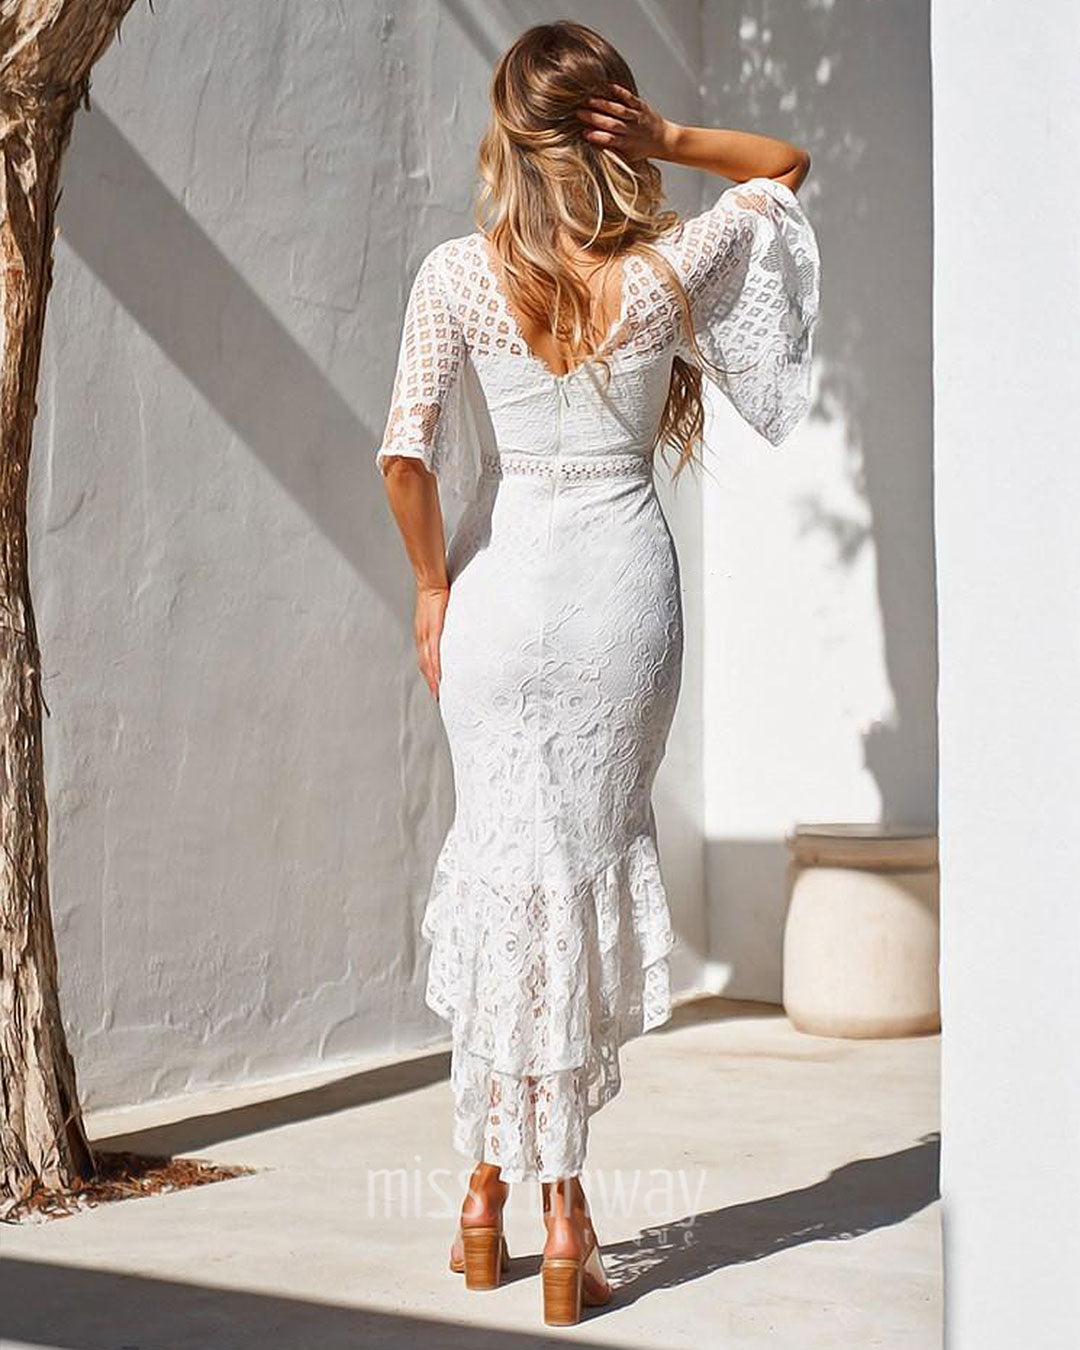 Reyna Lace Midi Dress - White [PRE-ORDER]